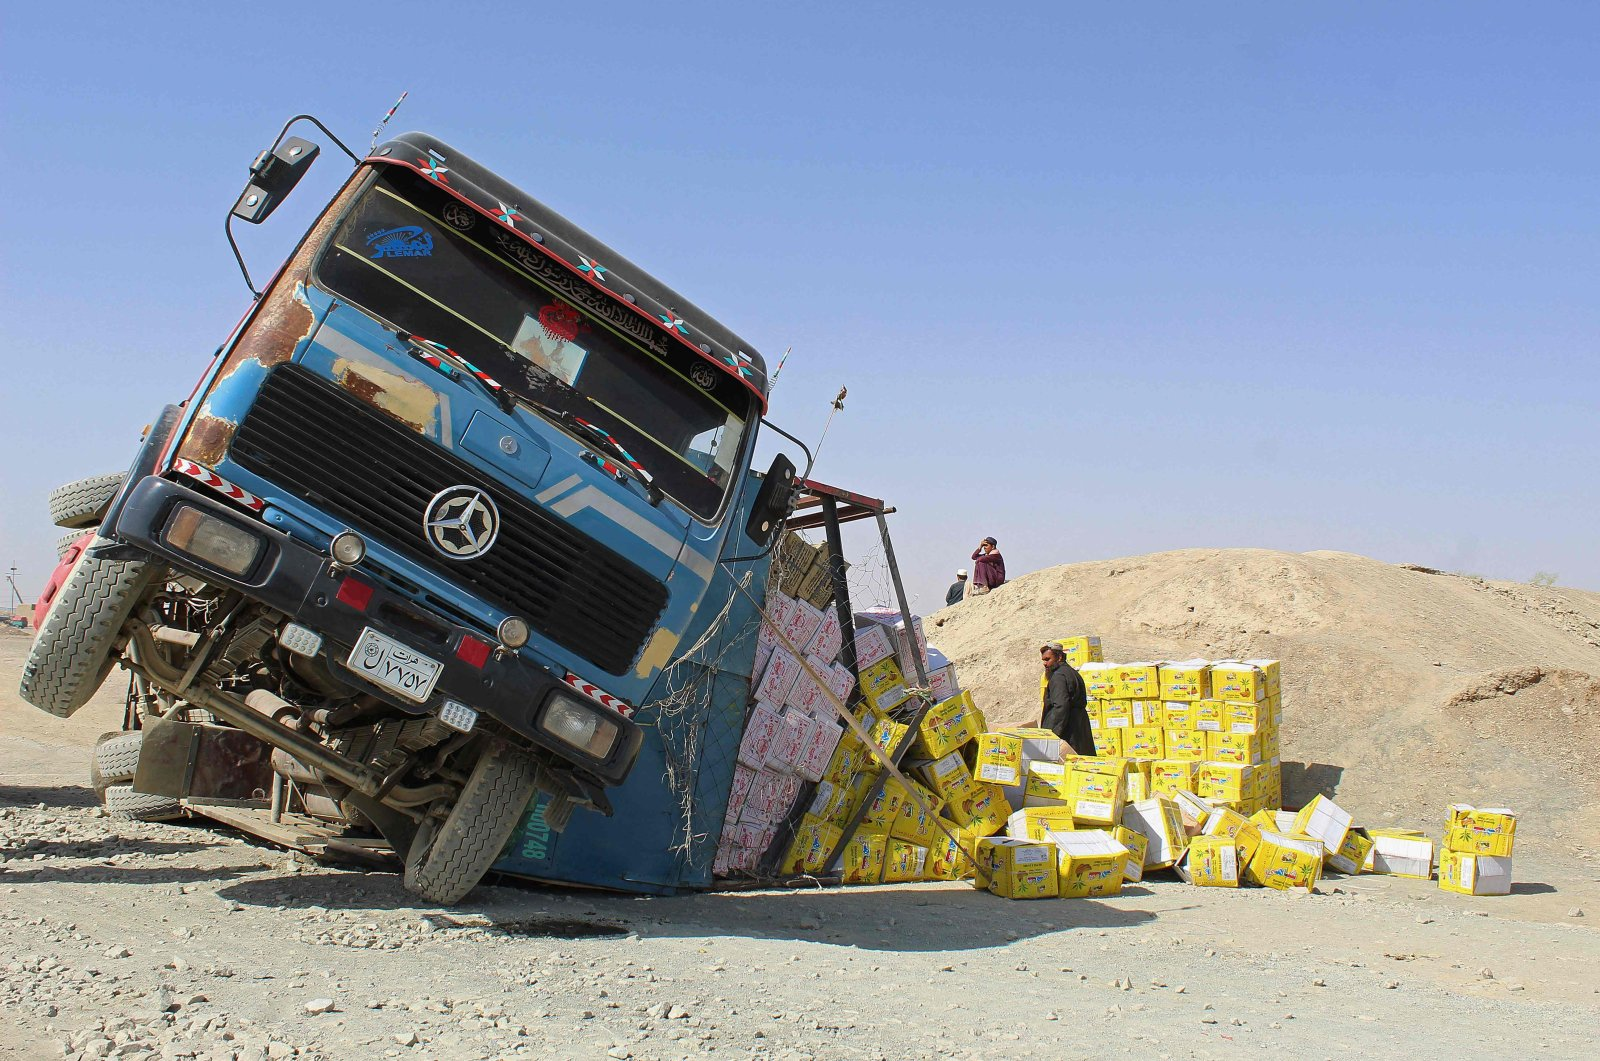 An Afghan driver stands amid boxes of dry food next to his damaged truck at the site of an accident near the Pakistan-Afghanistan border crossing point in Chaman, Pakistan, on Aug. 20, 2021. (AFP Photo)